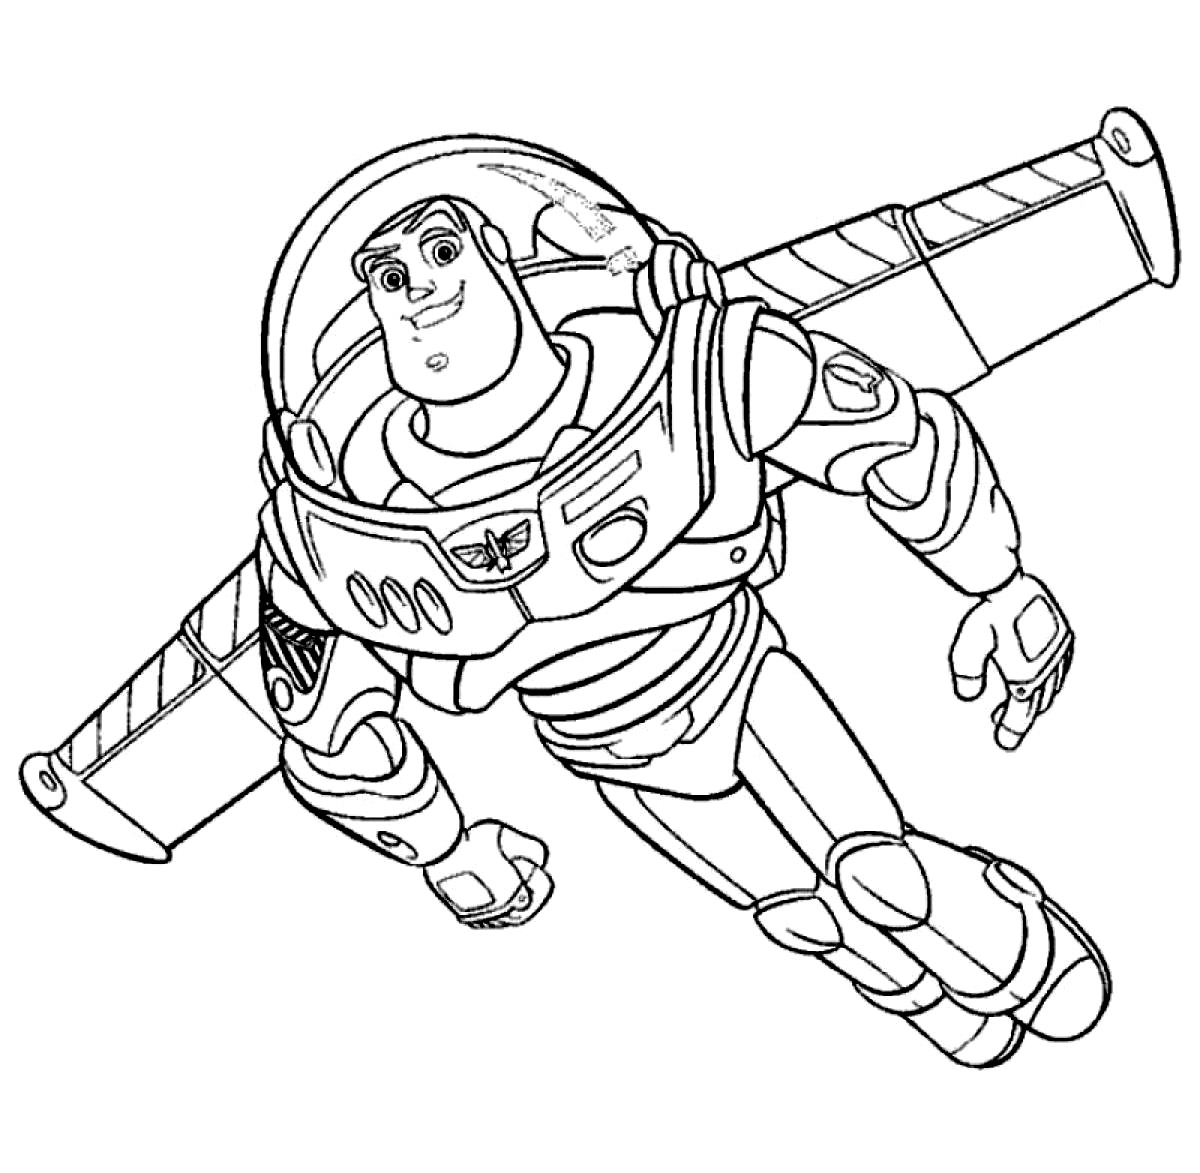 Free printable buzz lightyear coloring pages for kids for Free printable coloring pages toy story 3